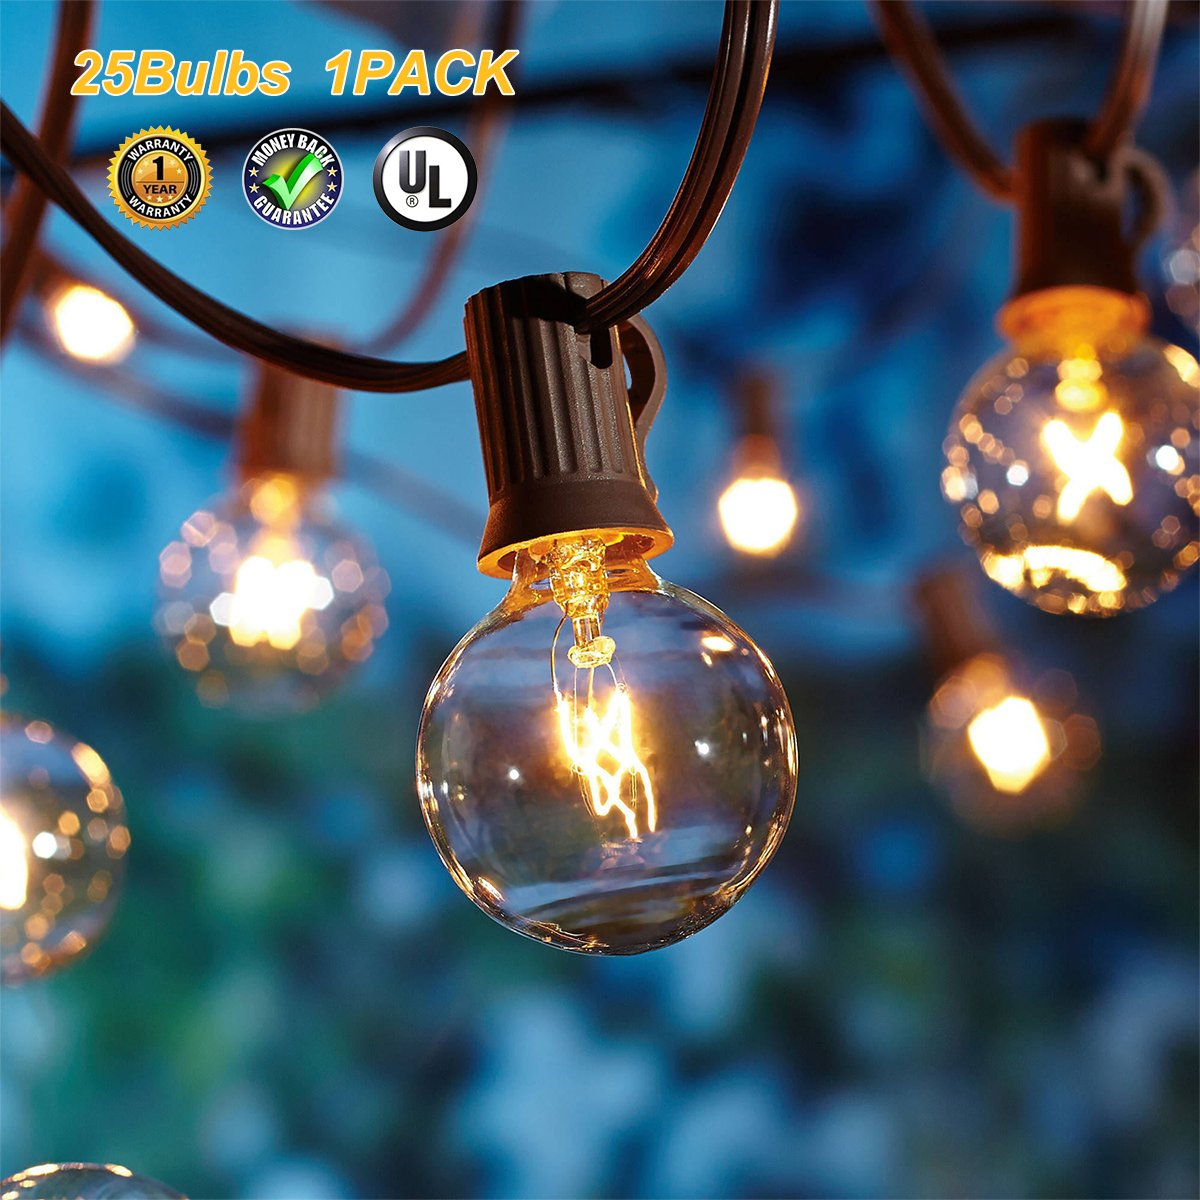 Globe String Lights G40 UL Listed Patio Lights for Indoor Outdoor Commercial Decor 25Ft with 25 Clear Bulbs Outdoor String Lights for Party Wedding Garden Backyard Deck Yard Pergola Gazebo, Black by Upook (Image #2)